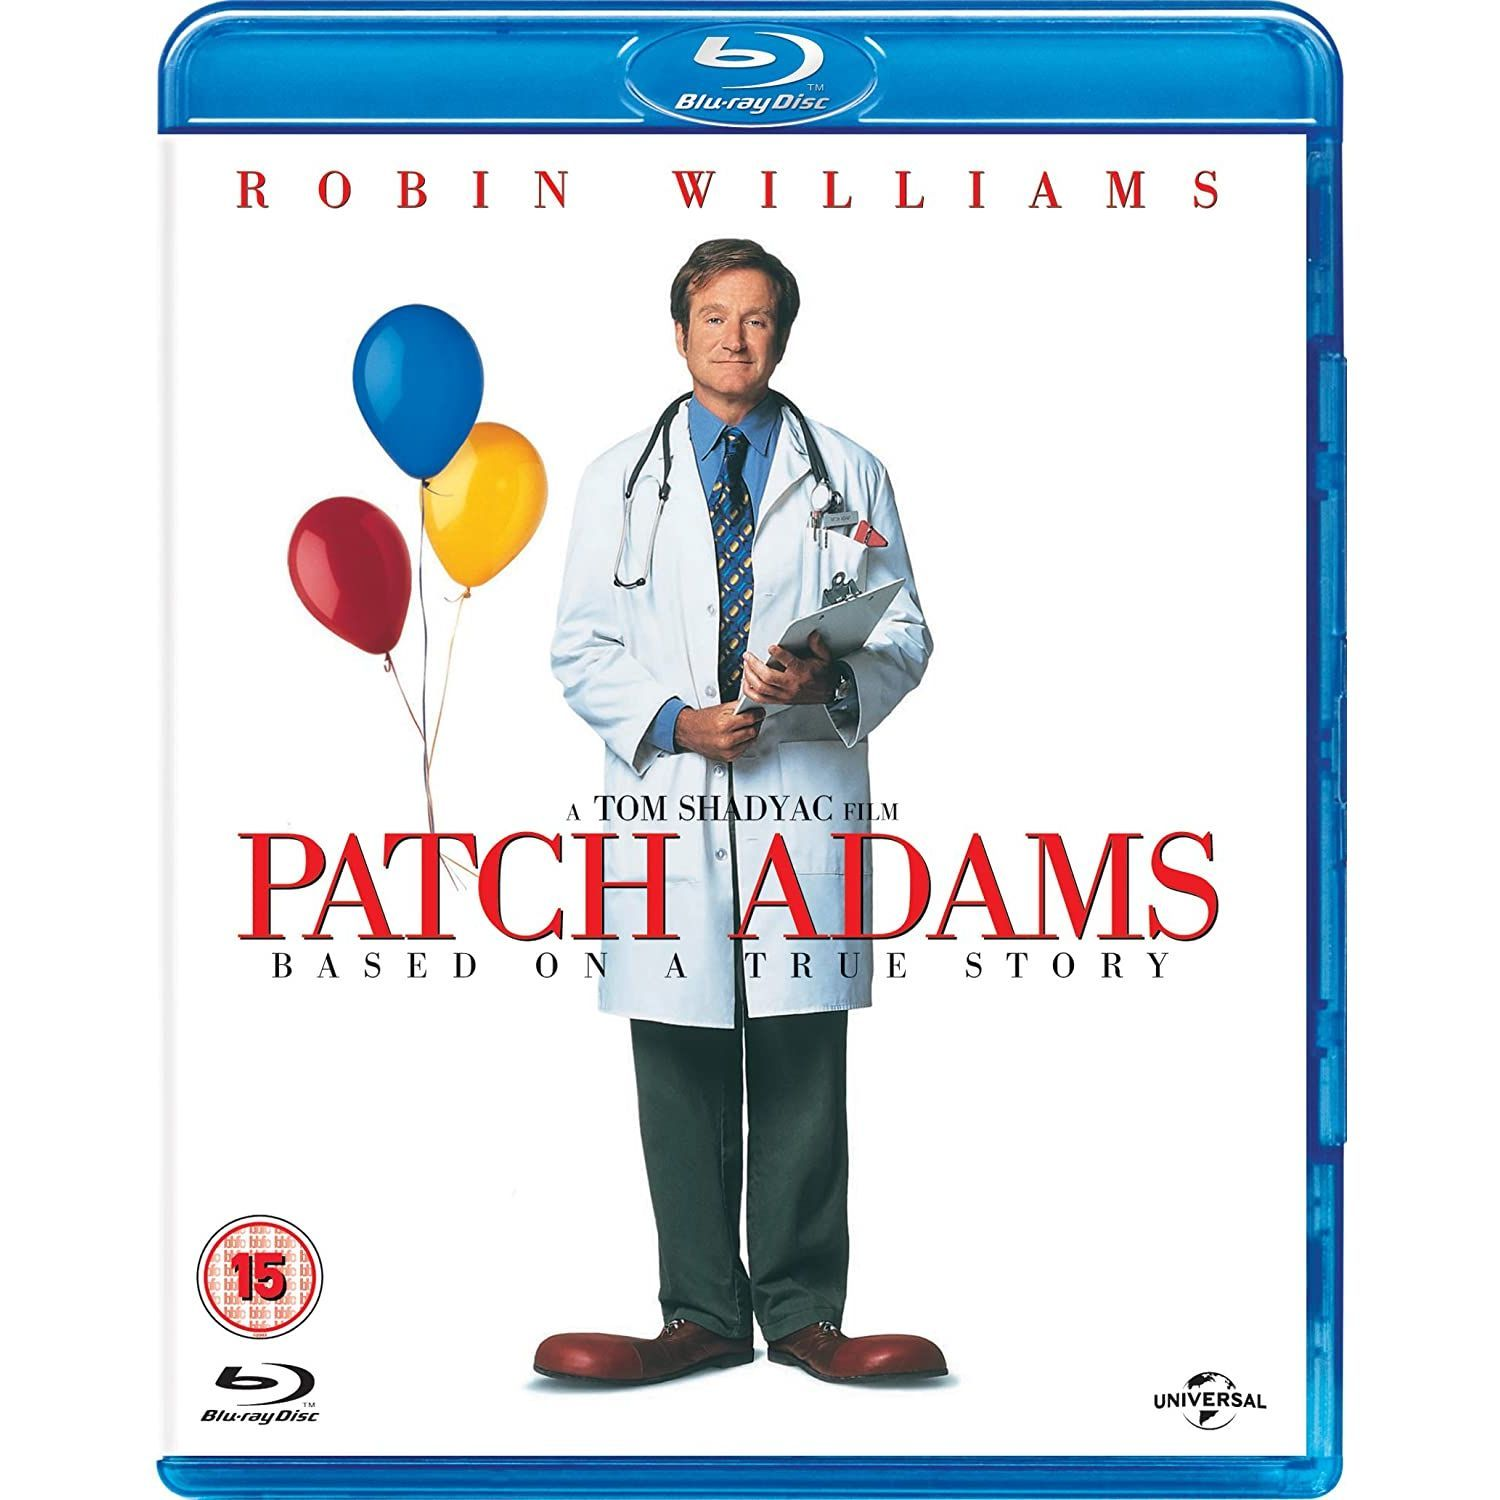 Patch adams 5 10 movie clip the children's ward 1998 hd youtube.